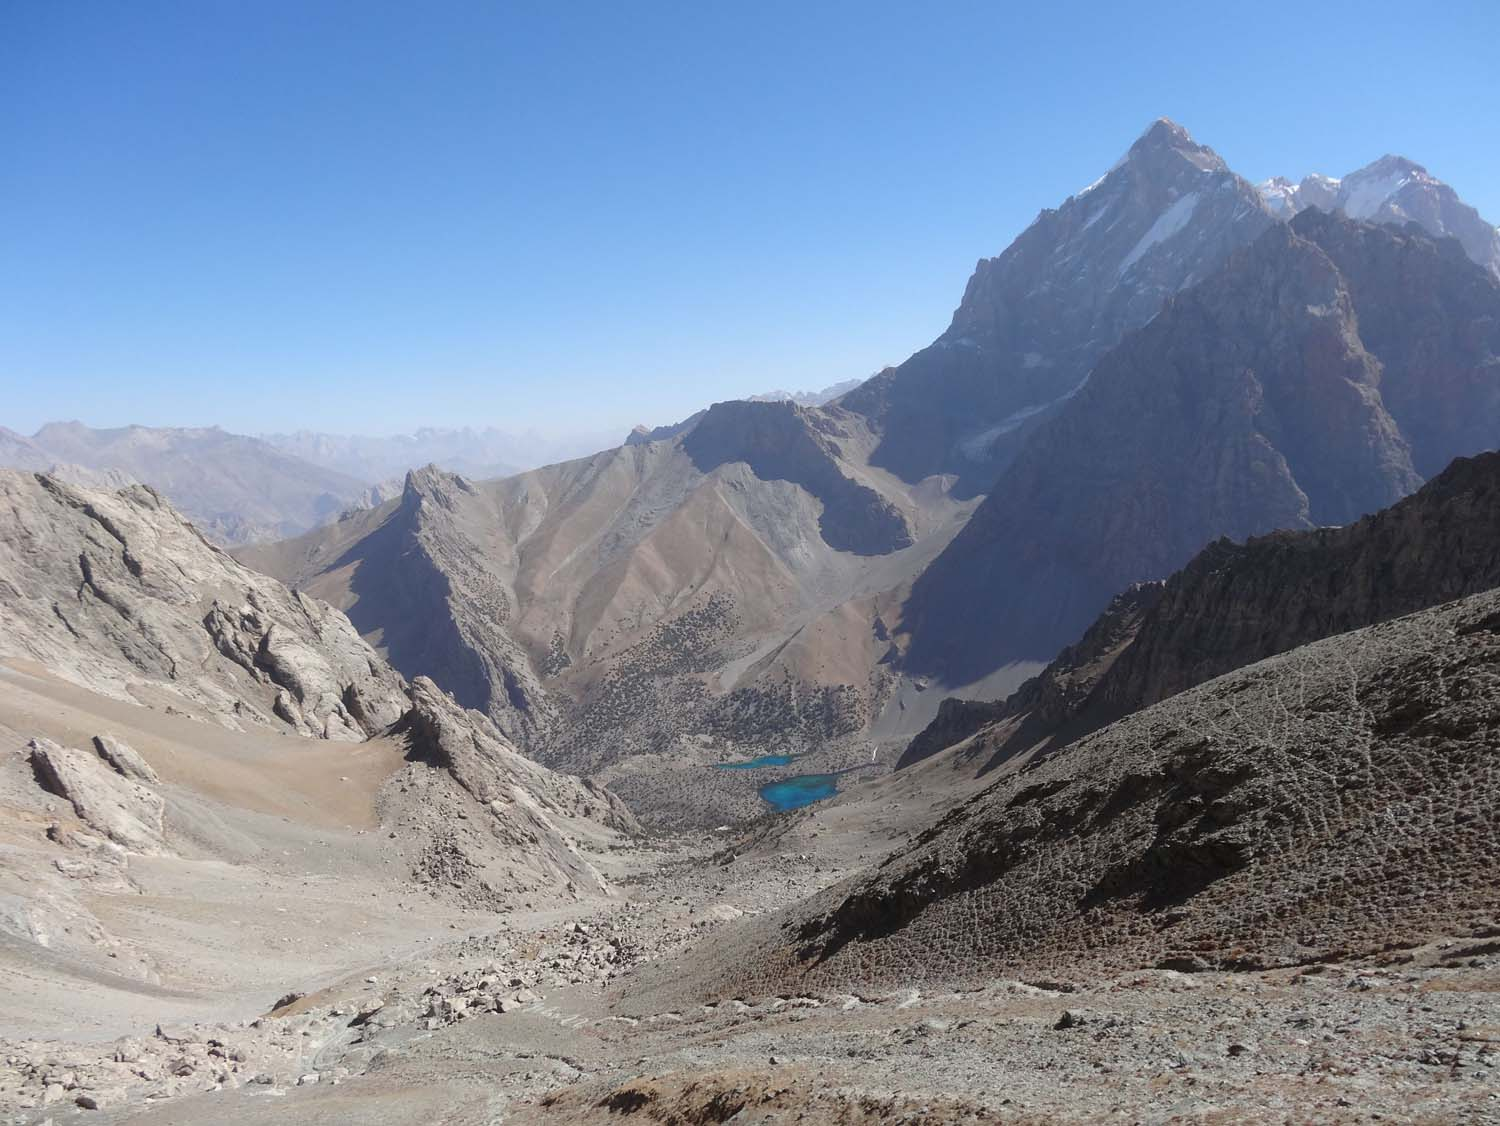 view from Alauddin pass back to the Alauddin lakes, check out the switchbacks!